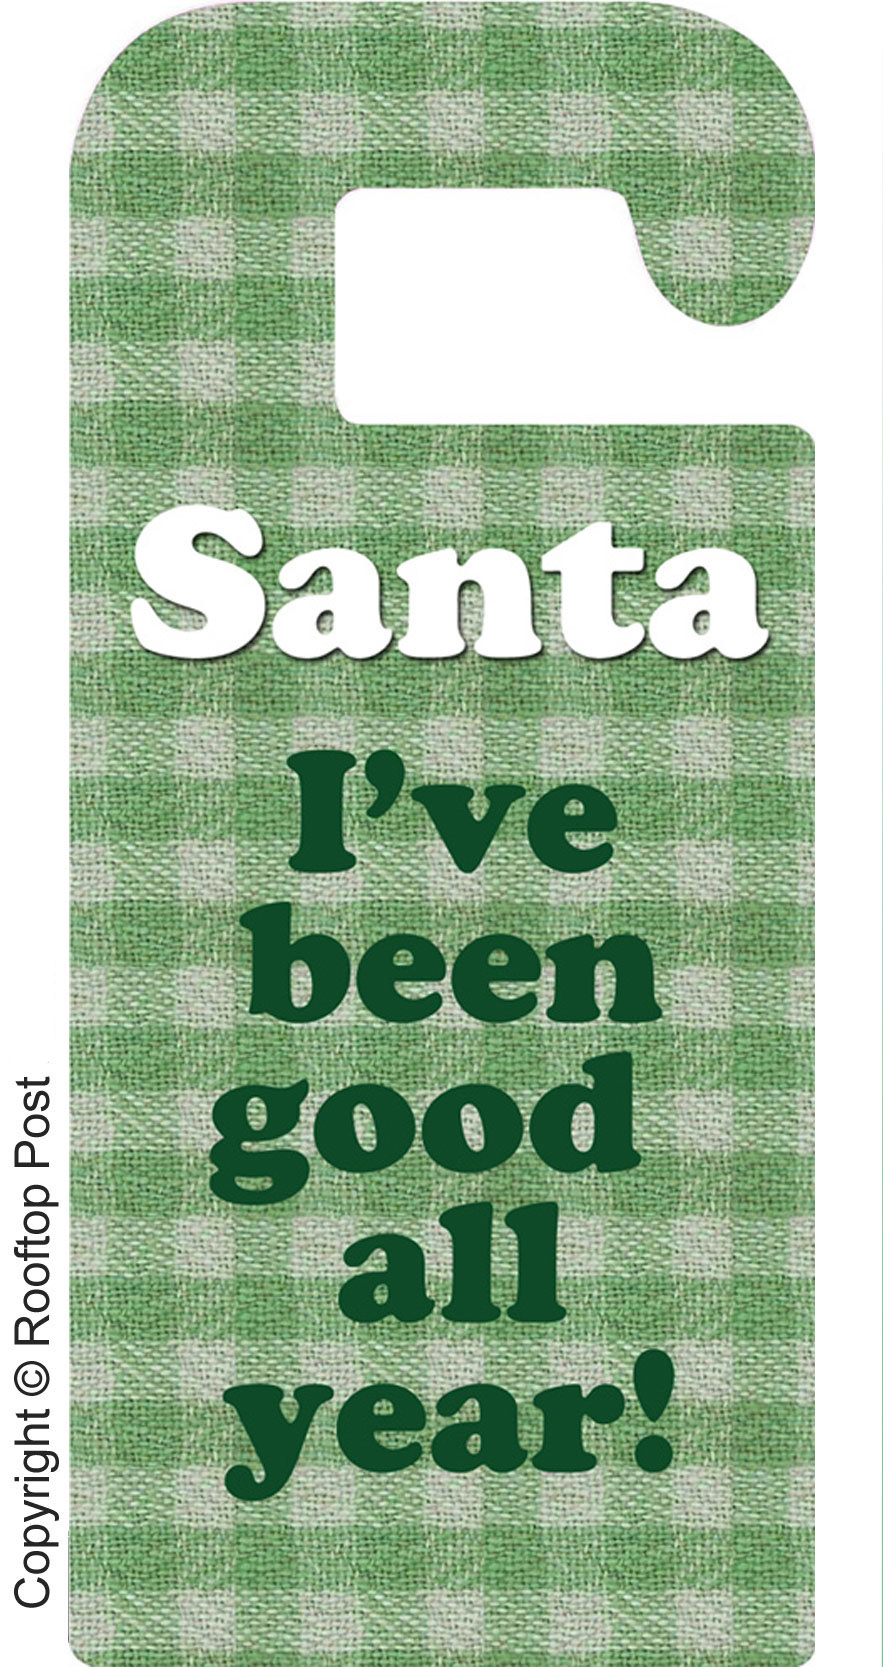 Printable door hanger for Christmas Eve letting Santa know you've been good all year